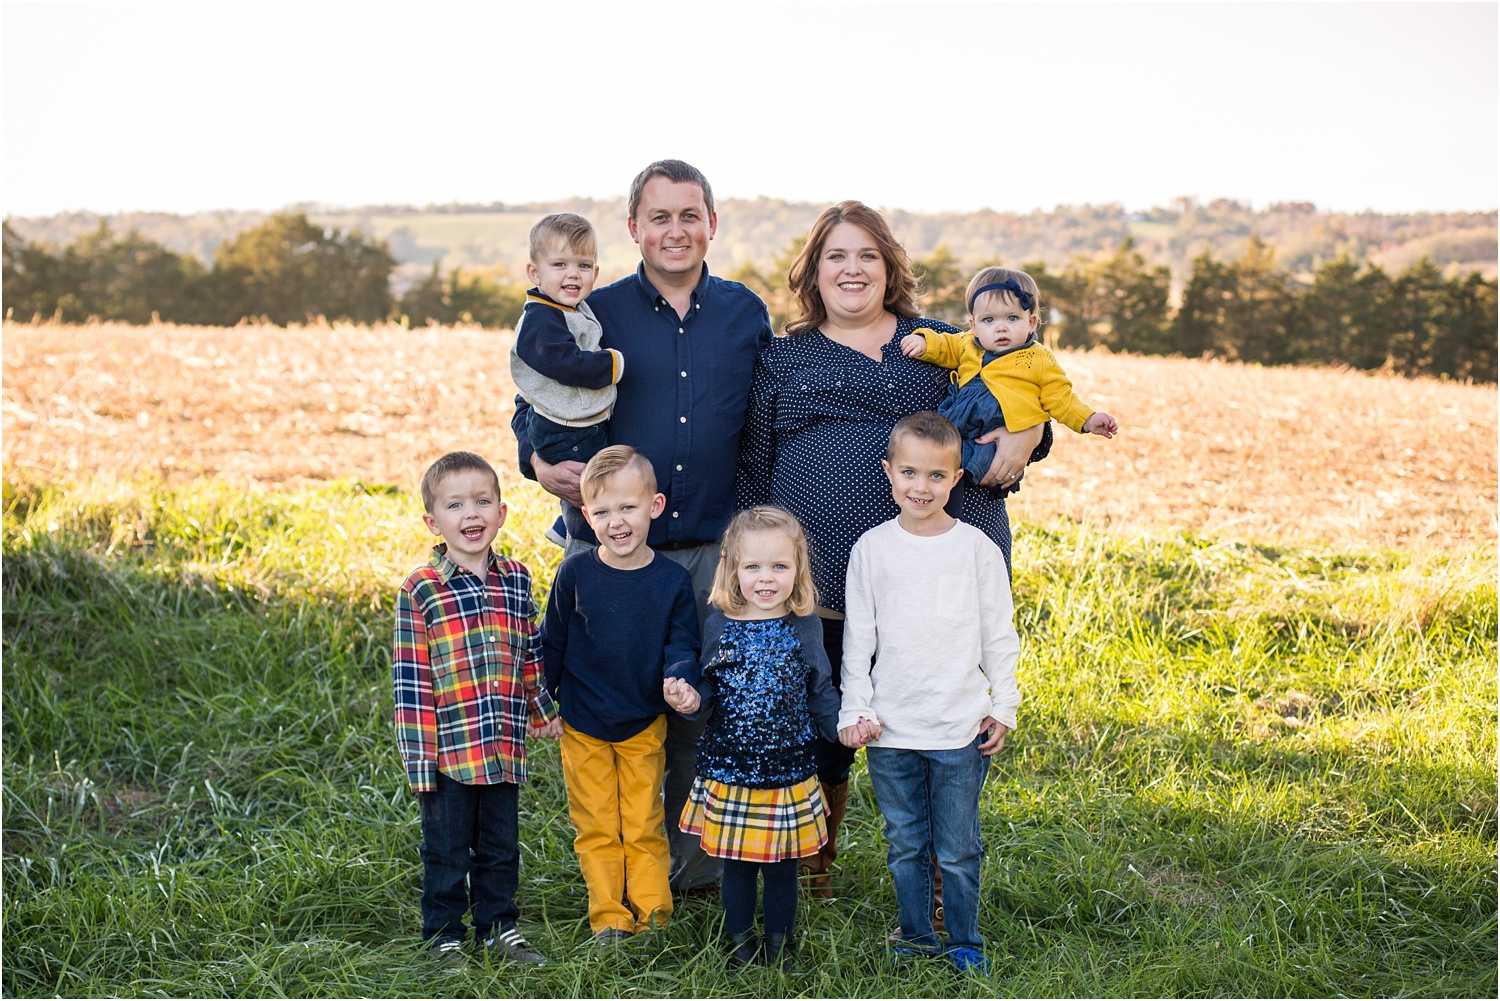 Eller_Family_Harrisonburg_Photography2.jpg